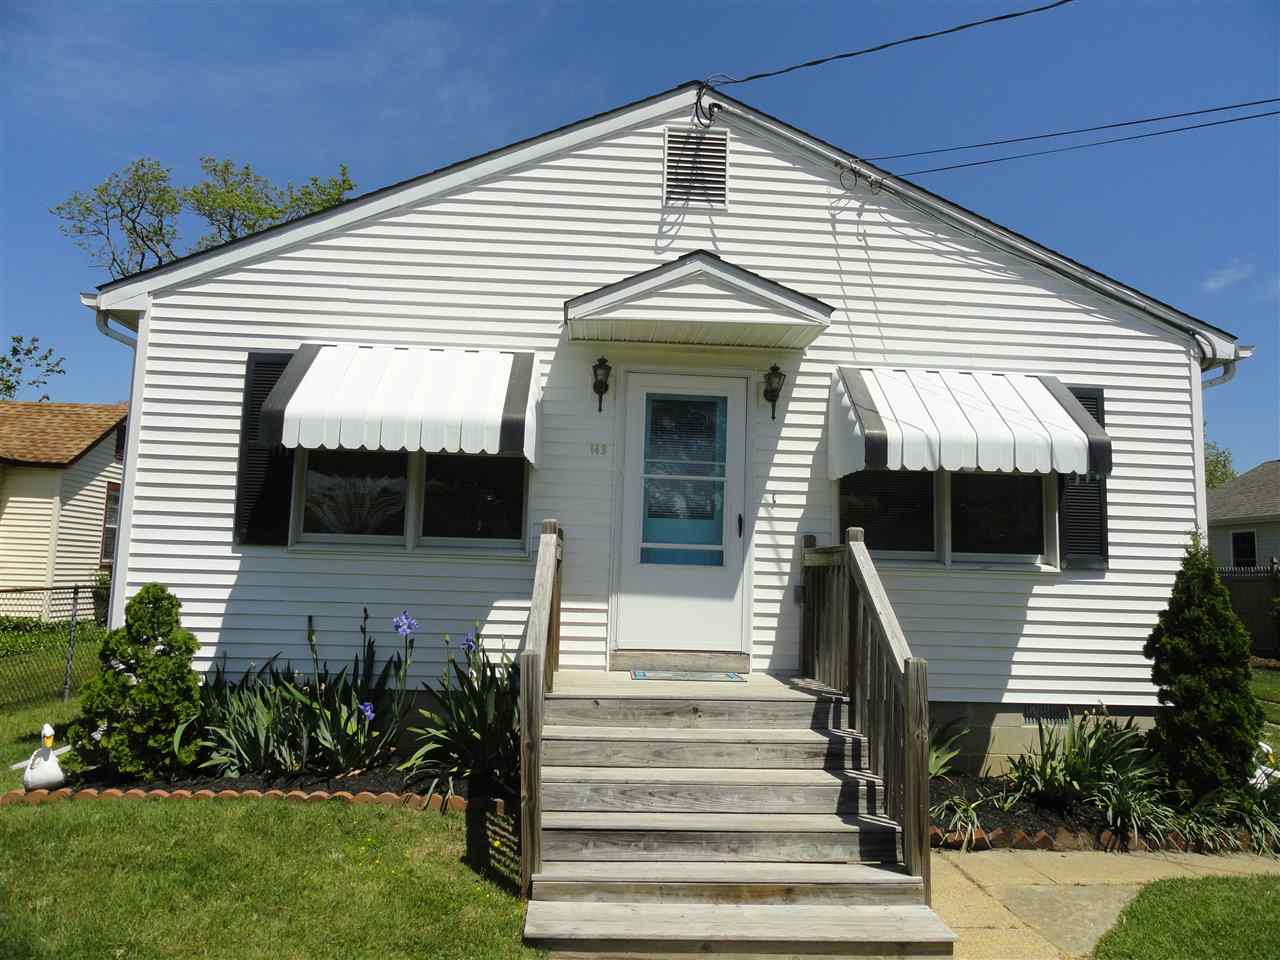 Single Family Home for Sale at 143 W. Bates 143 W. Bates Avenue Cape May, New Jersey 08251 United States